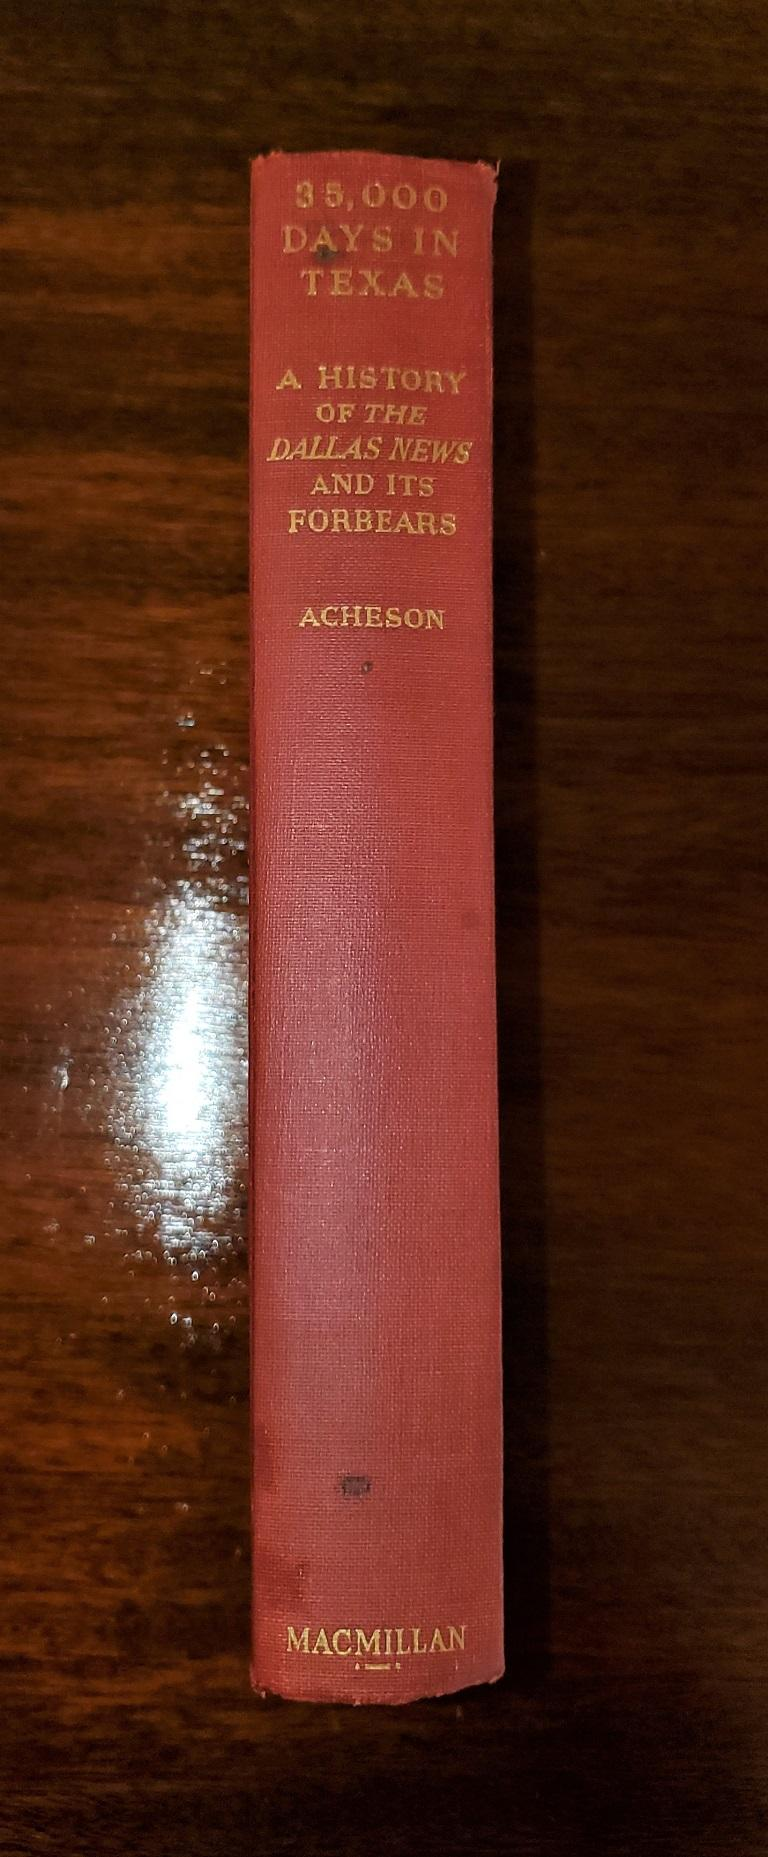 35000 Days in Texas by Acheson 1st Edition For Sale 2